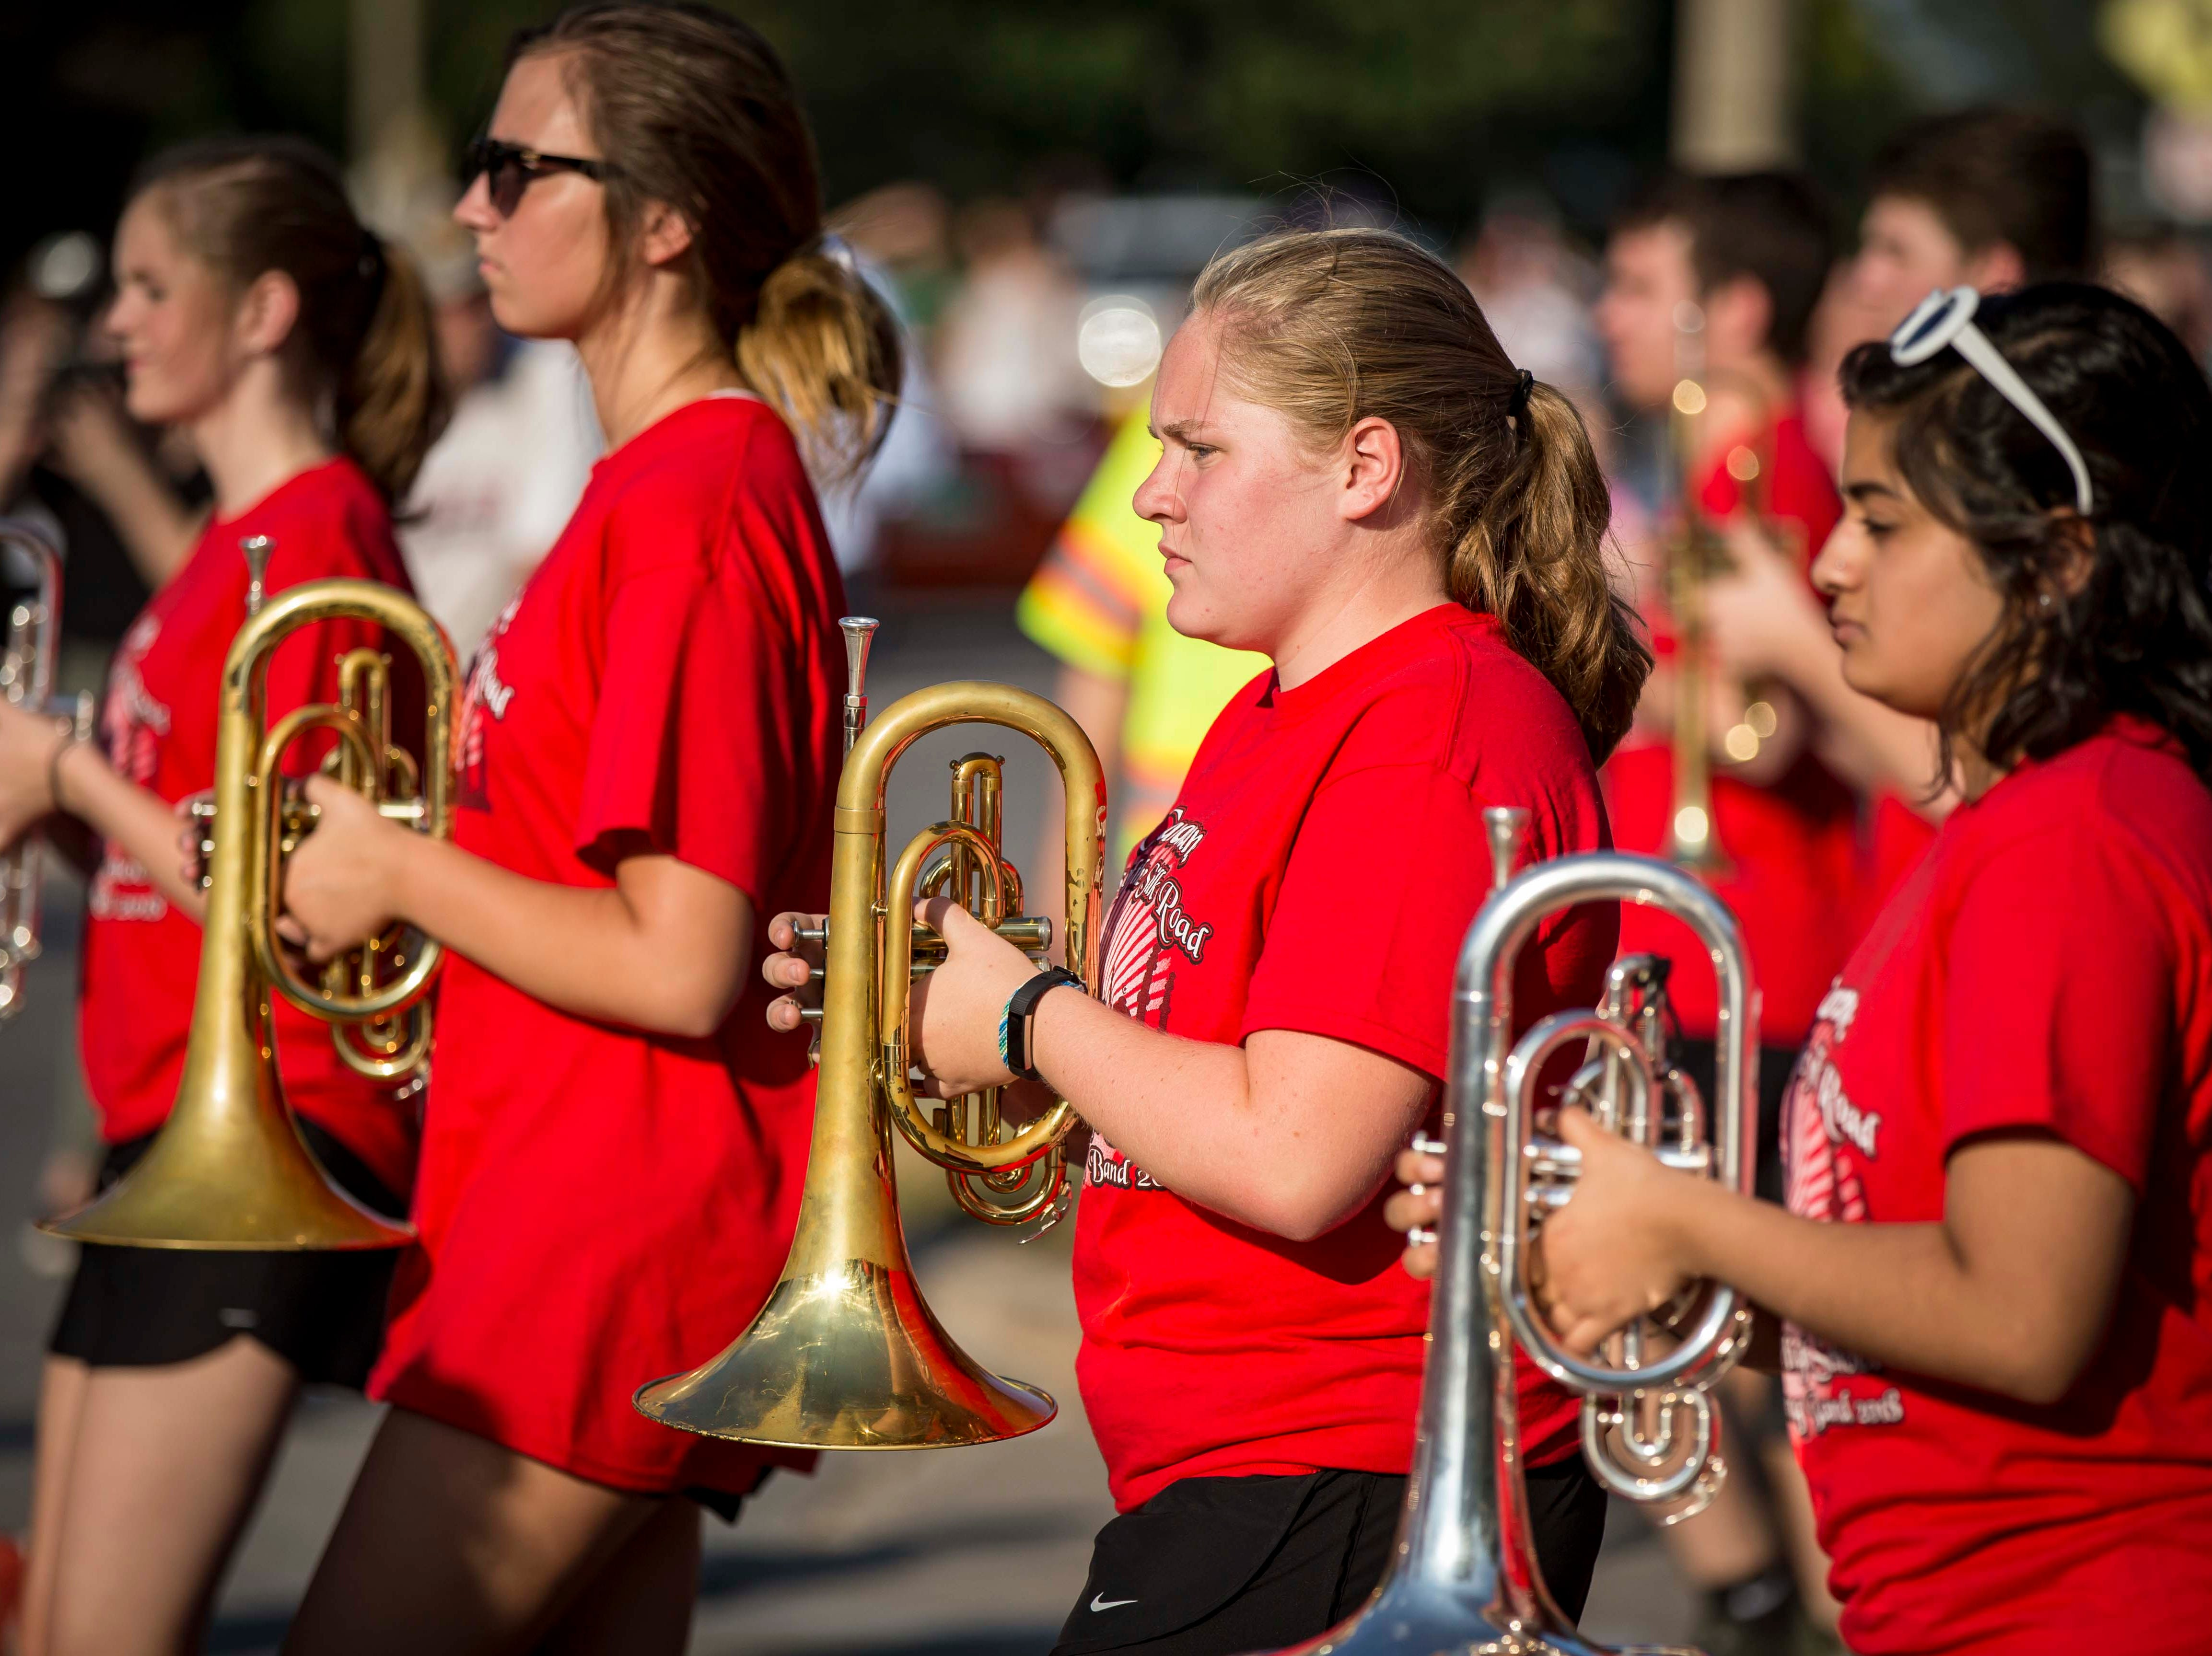 Members of the Cedar Falls High School Tiger Marching Band march during the 2018 Iowa State Fair parade from the Statehouse to downtown Des Moines Wednesday, Aug. 8, 2018. The Iowa State Fair runs from Aug. 9Ð19.